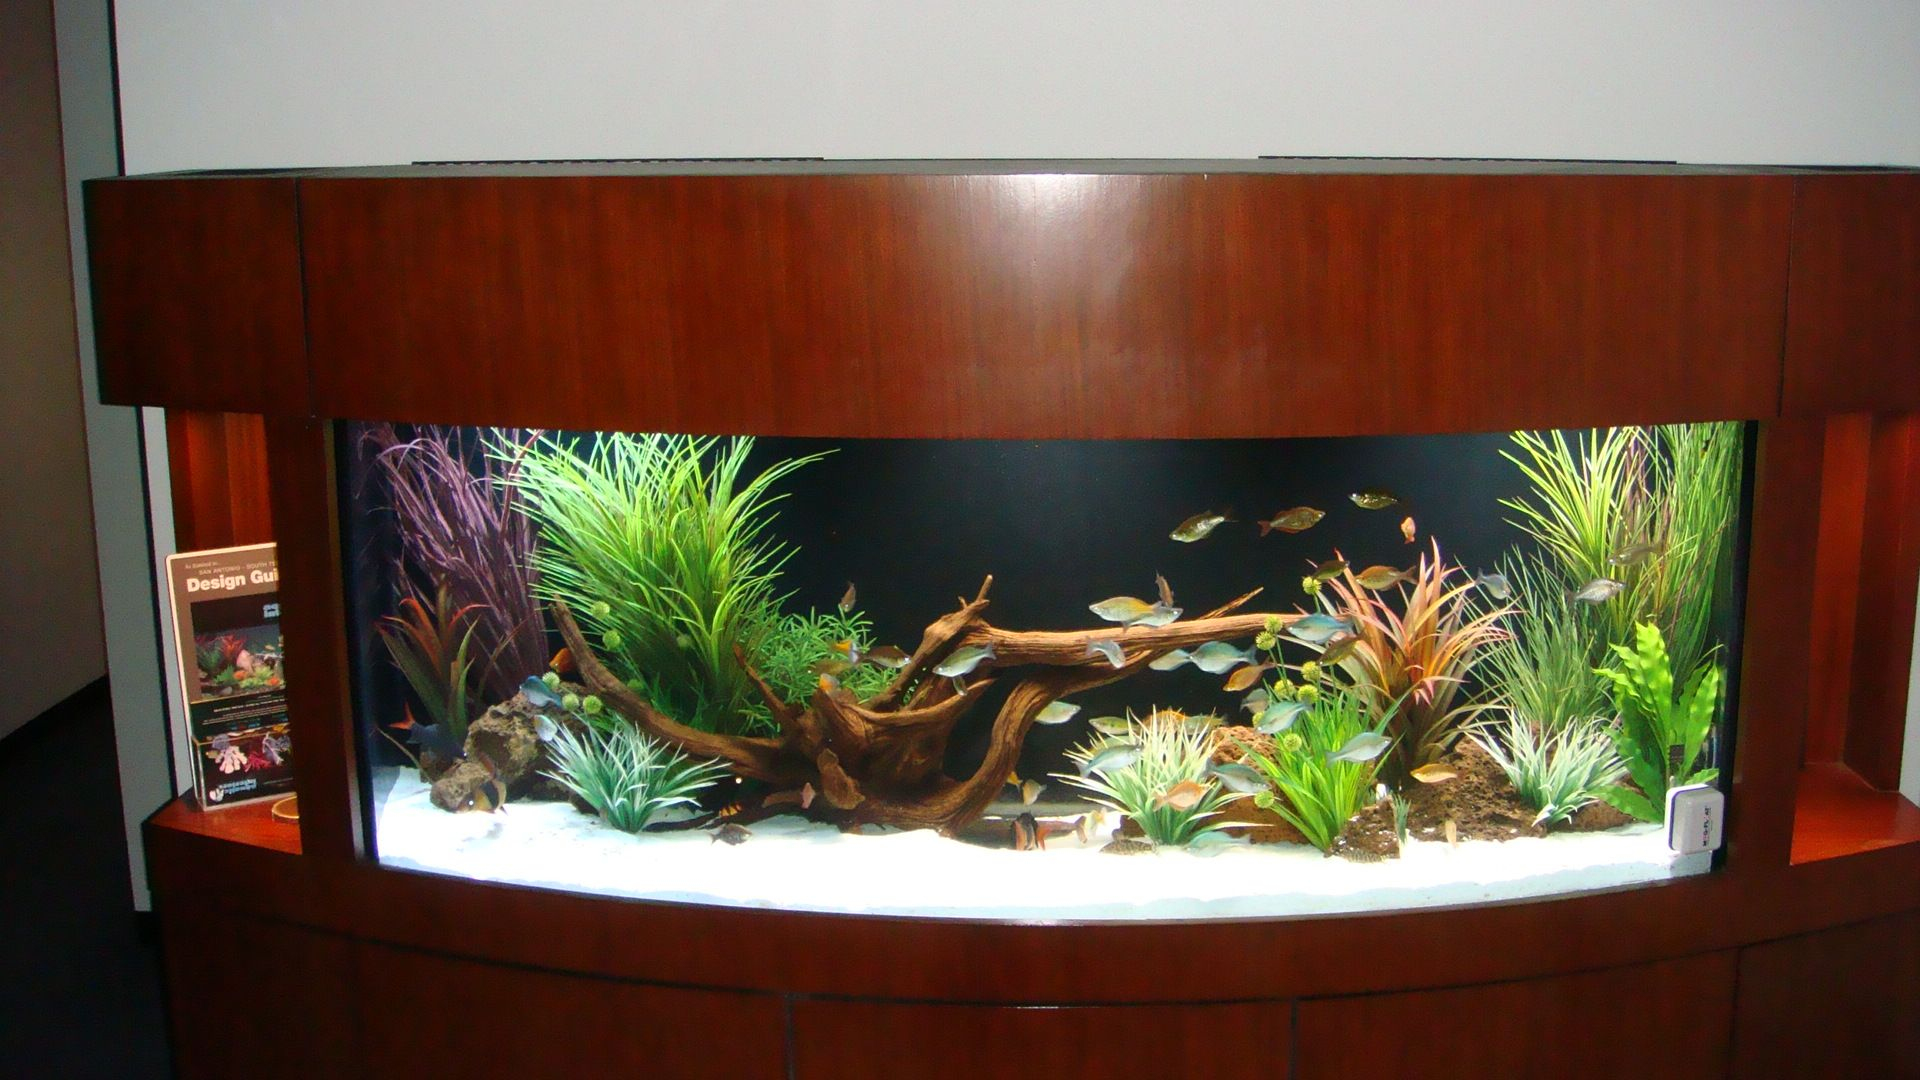 Transform the way your home looks using a fish tank fish for Aquarium for home decoration